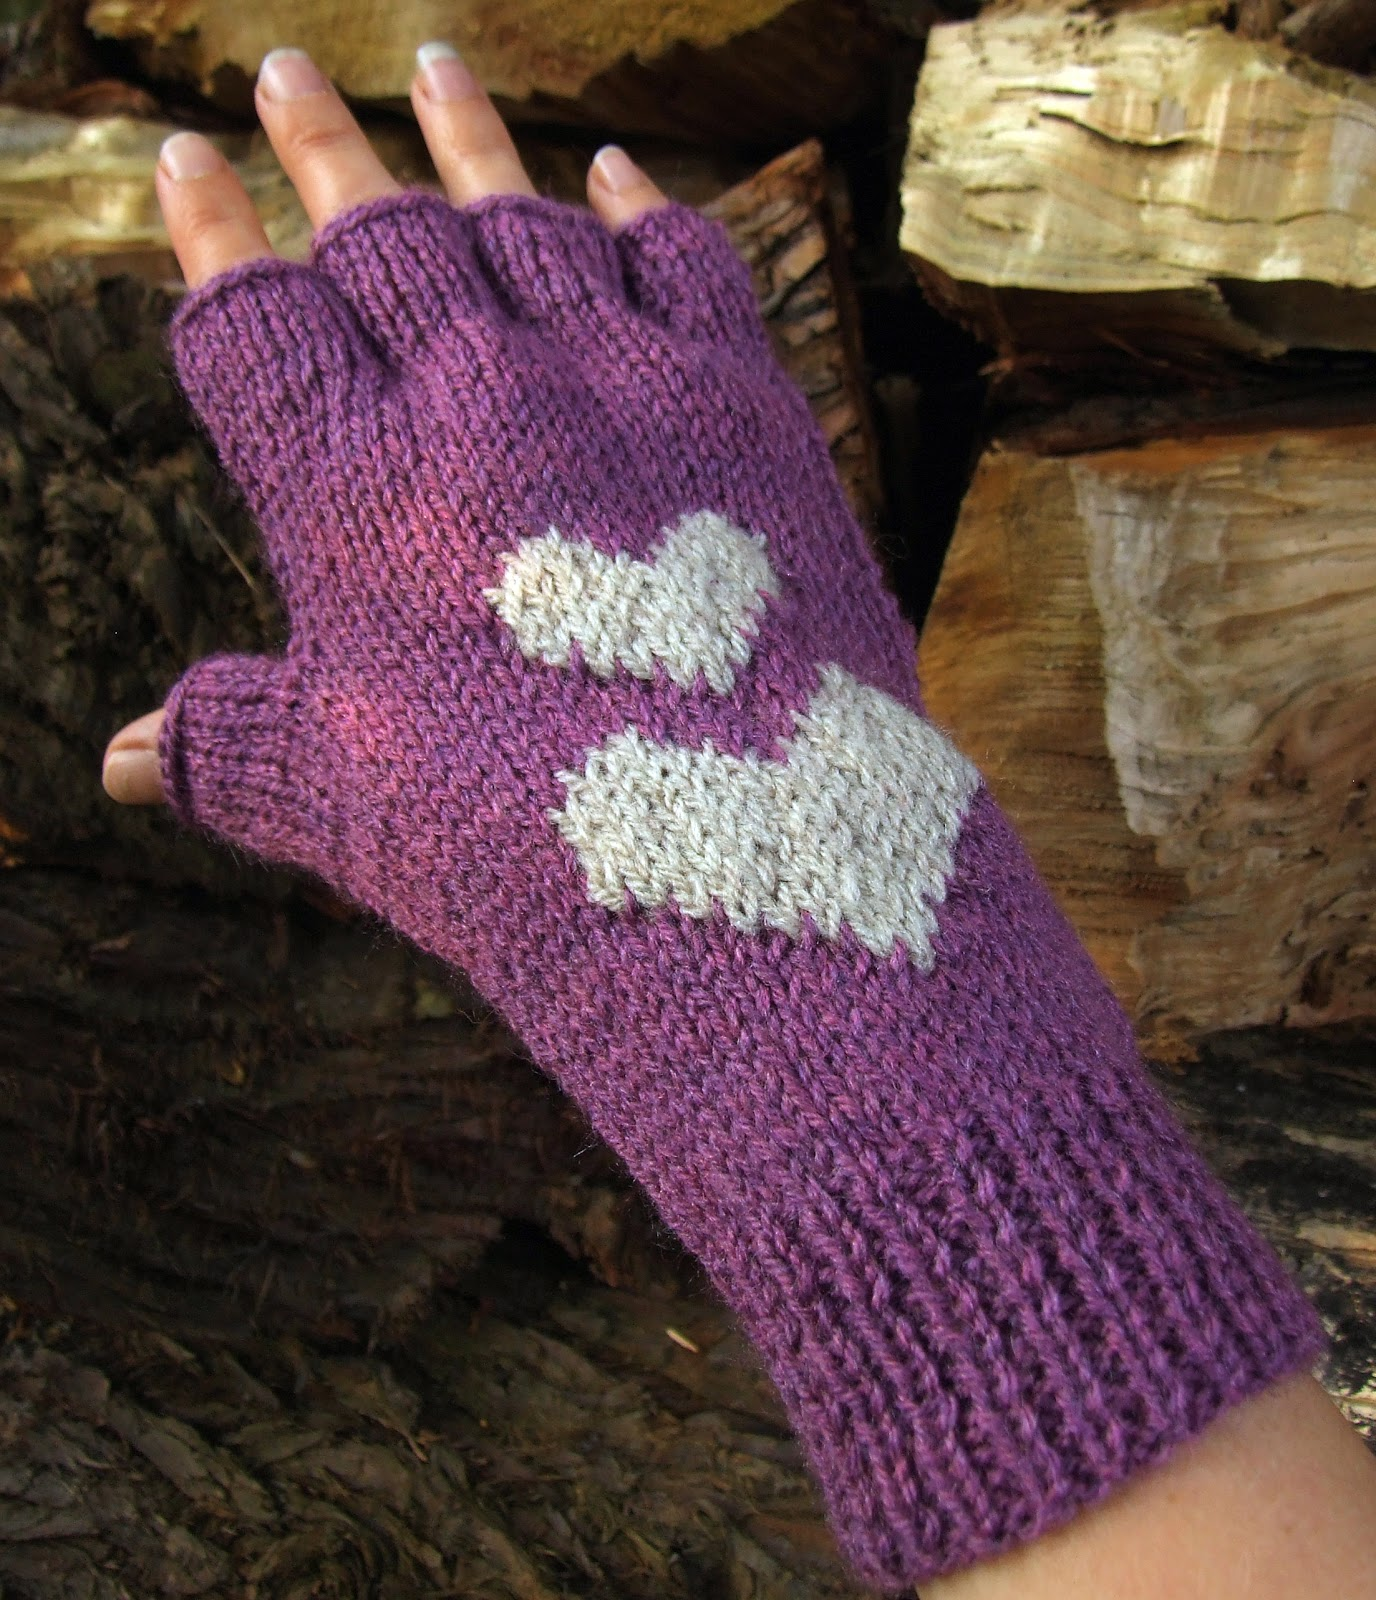 Free Knitted Glove Pattern : Hearts Fingerless Gloves - Knitting Pattern - WoolnHook by Leonie Morgan